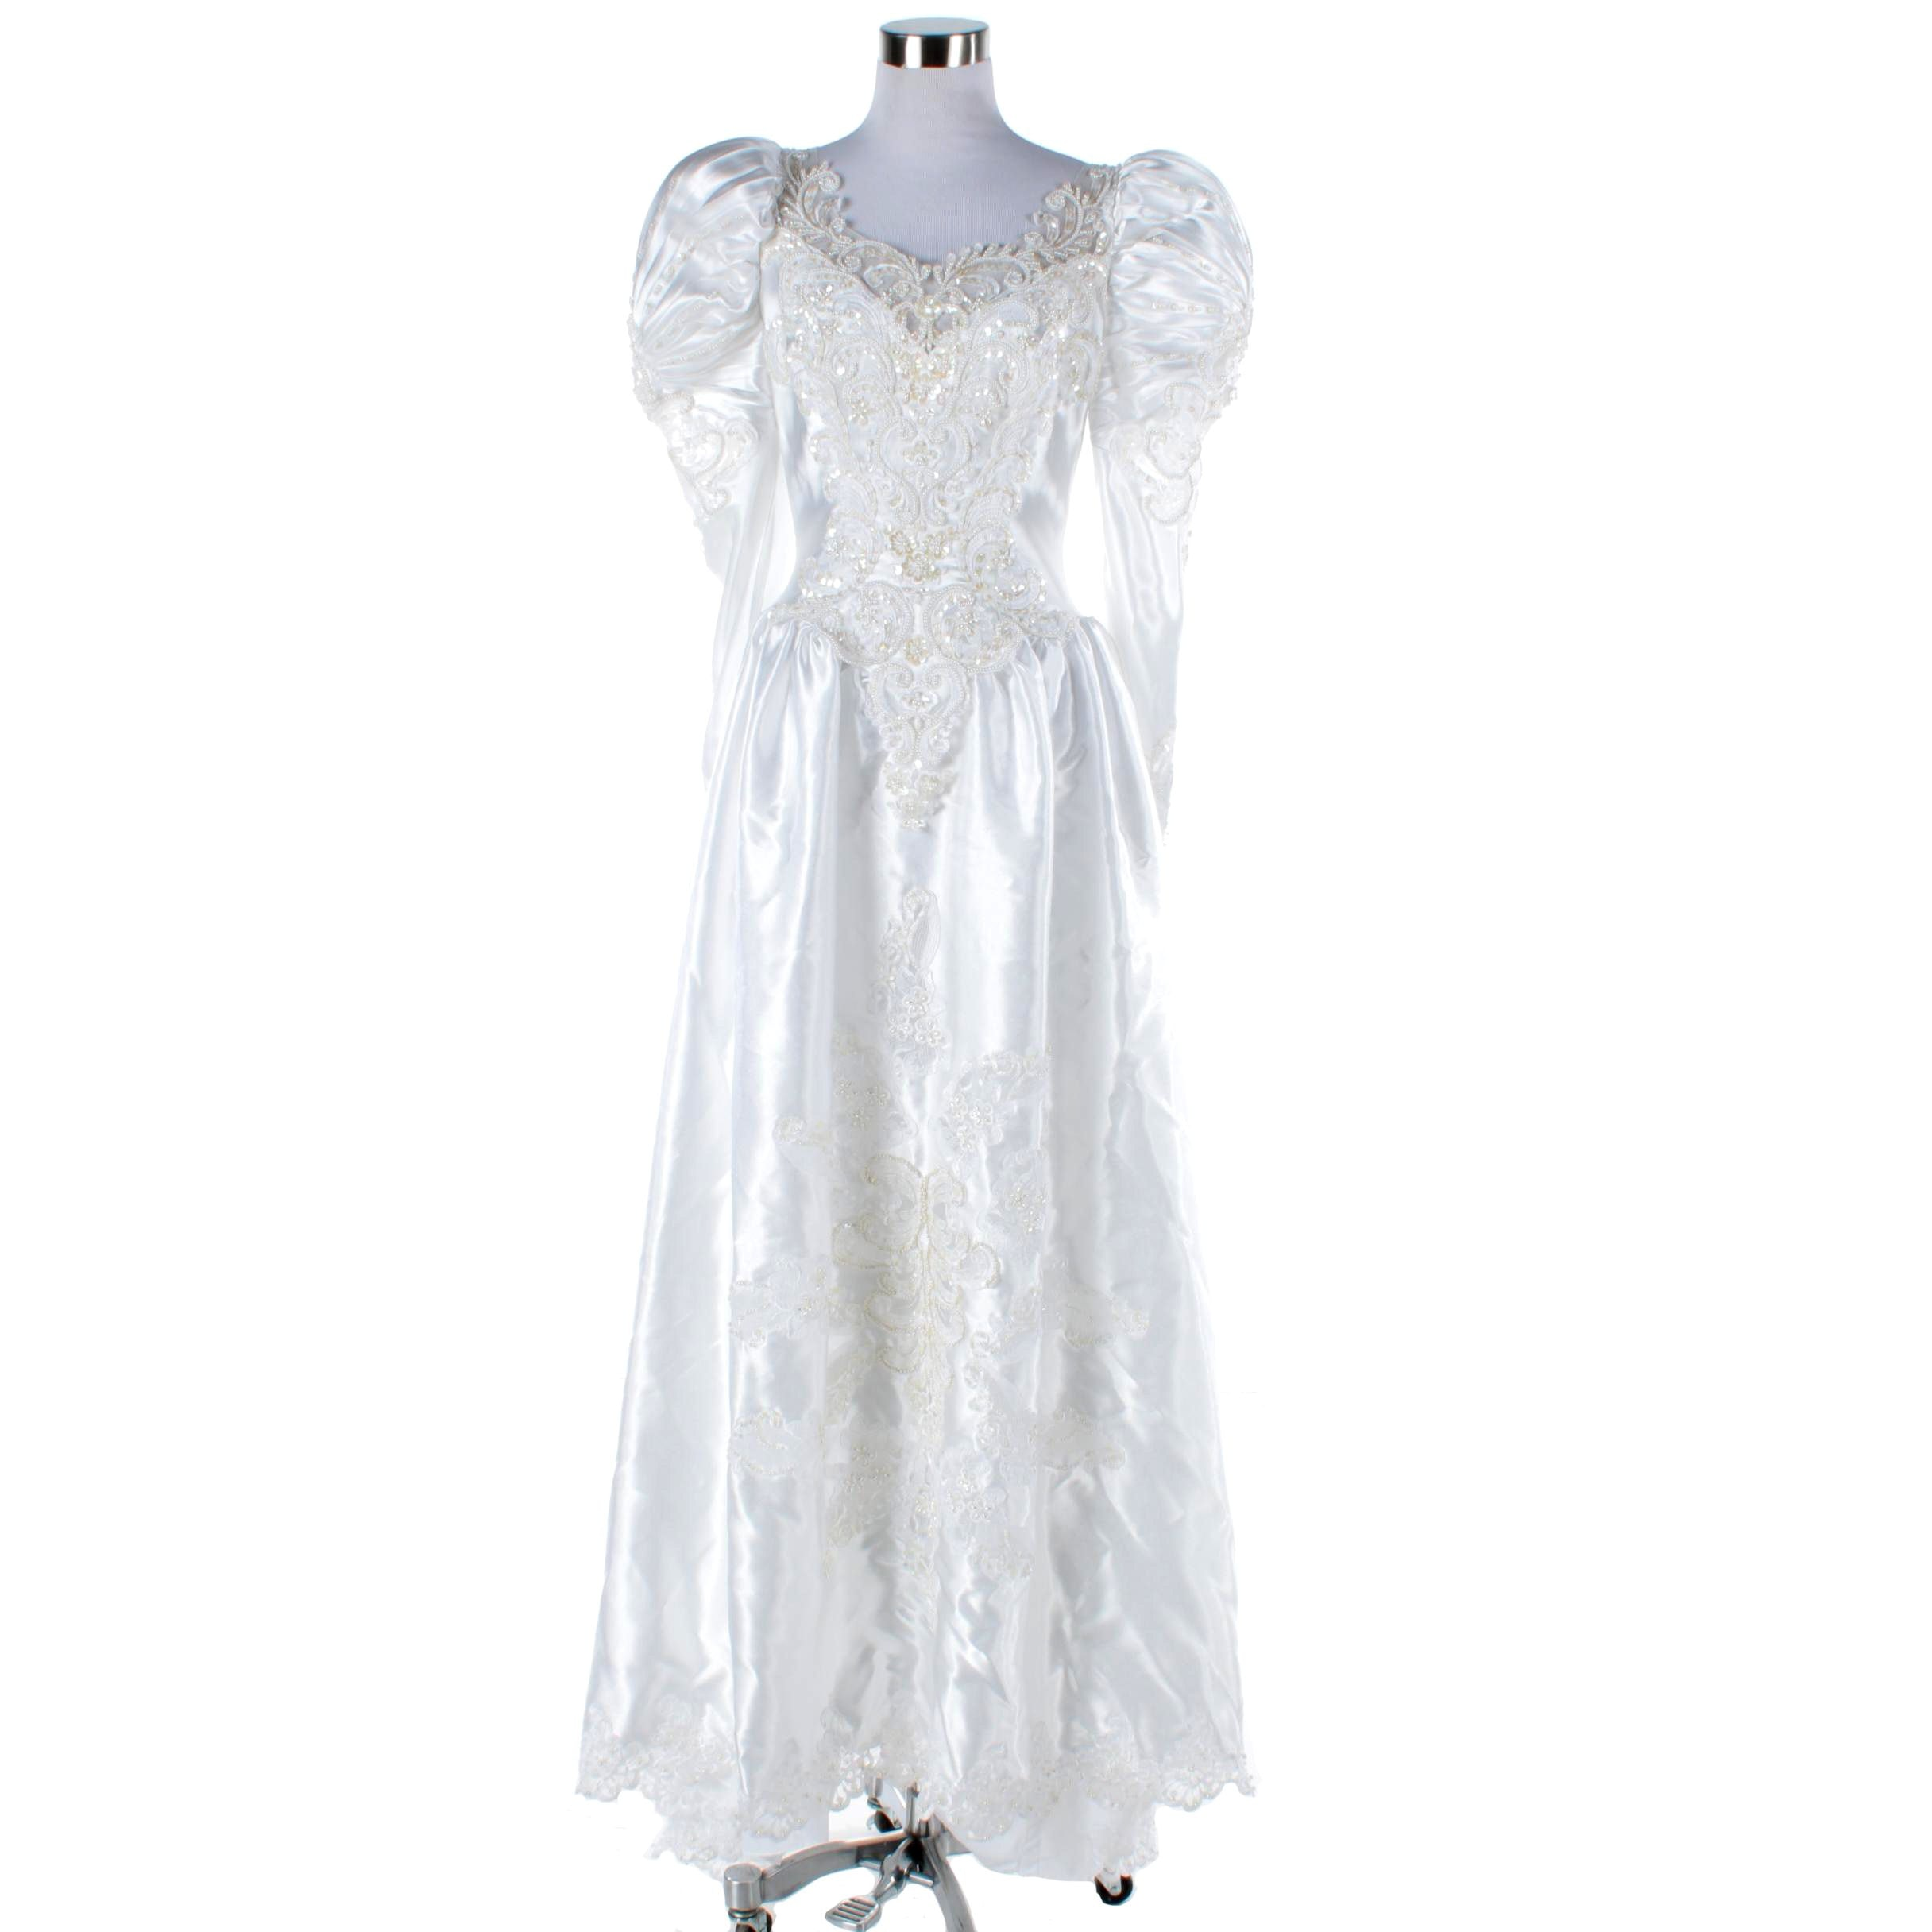 Circa 1980s Bonny White Beaded Wedding Dress with Cathedral Train